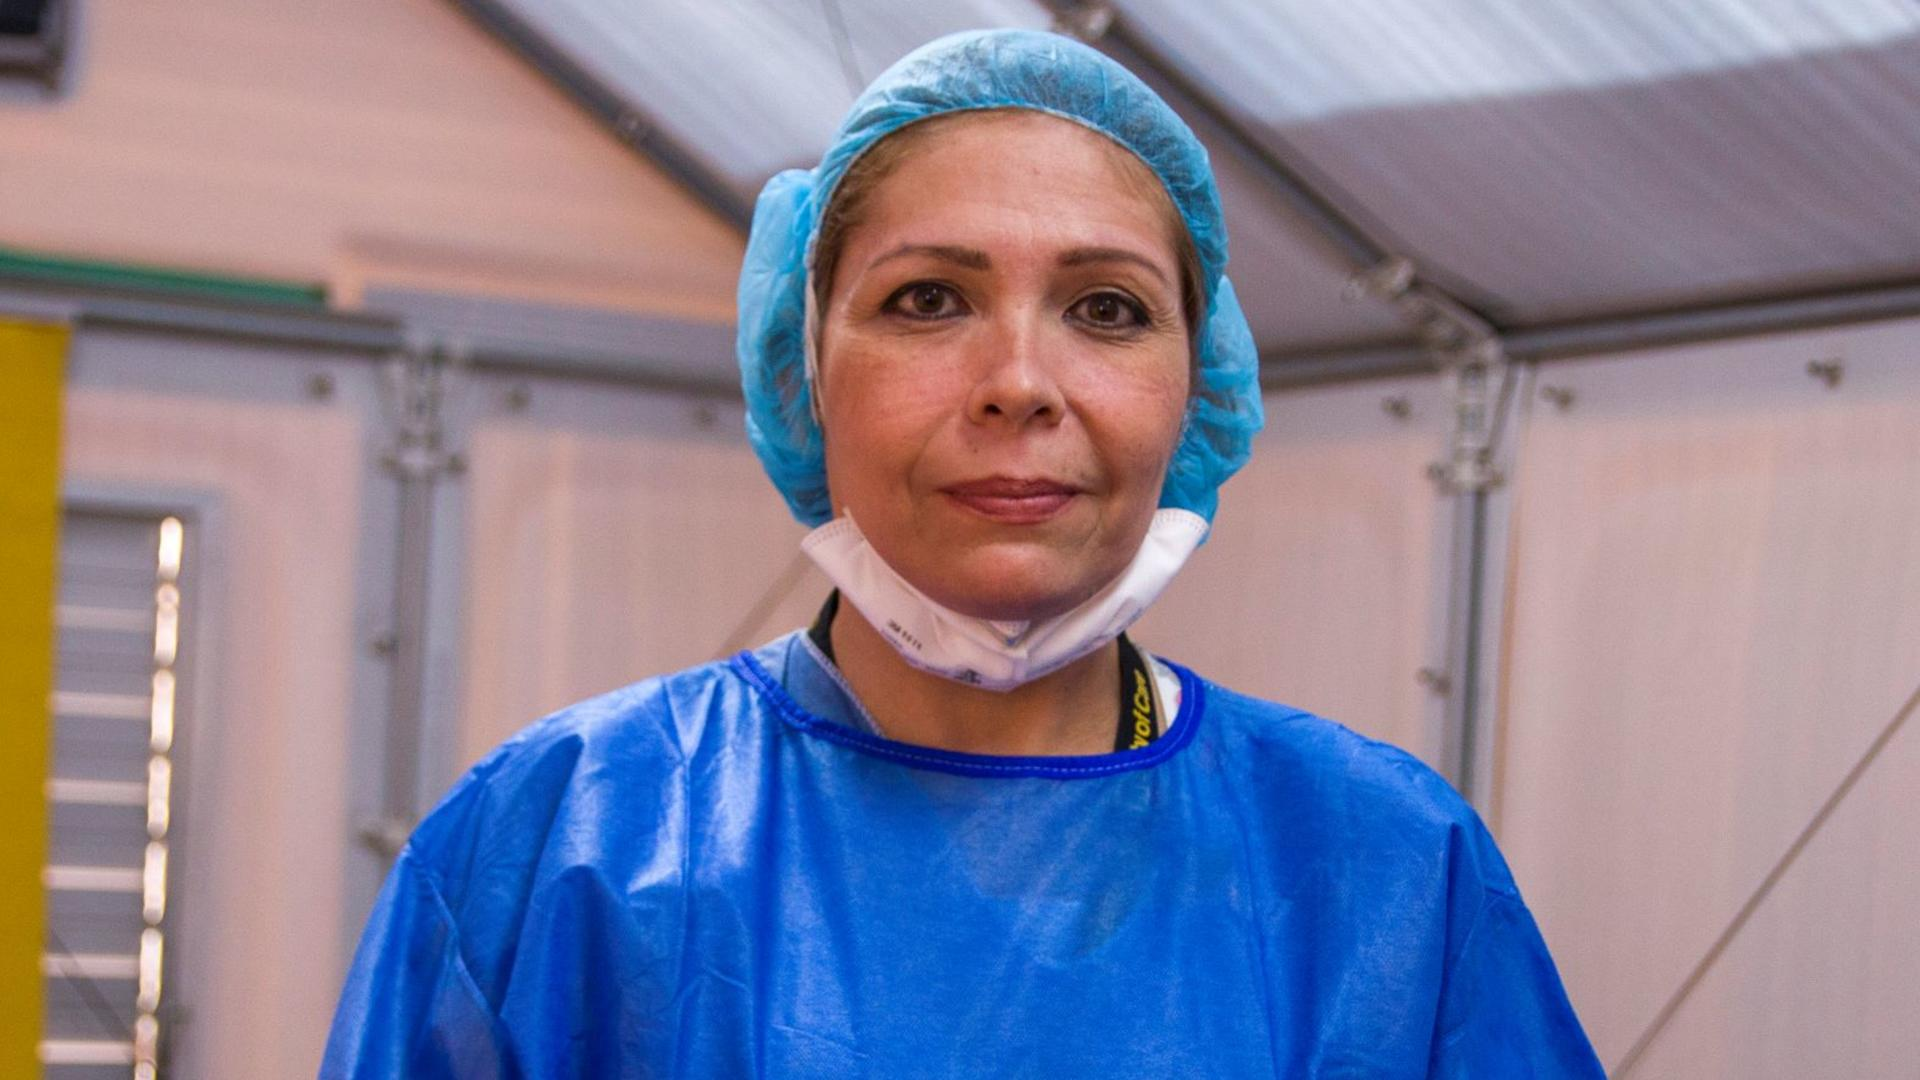 Dr. Edna, an IRC doctor from Venezuela working in Colombia, is inside a medical tent and wearing bright blue scrubs. She is looking straight at the camera.